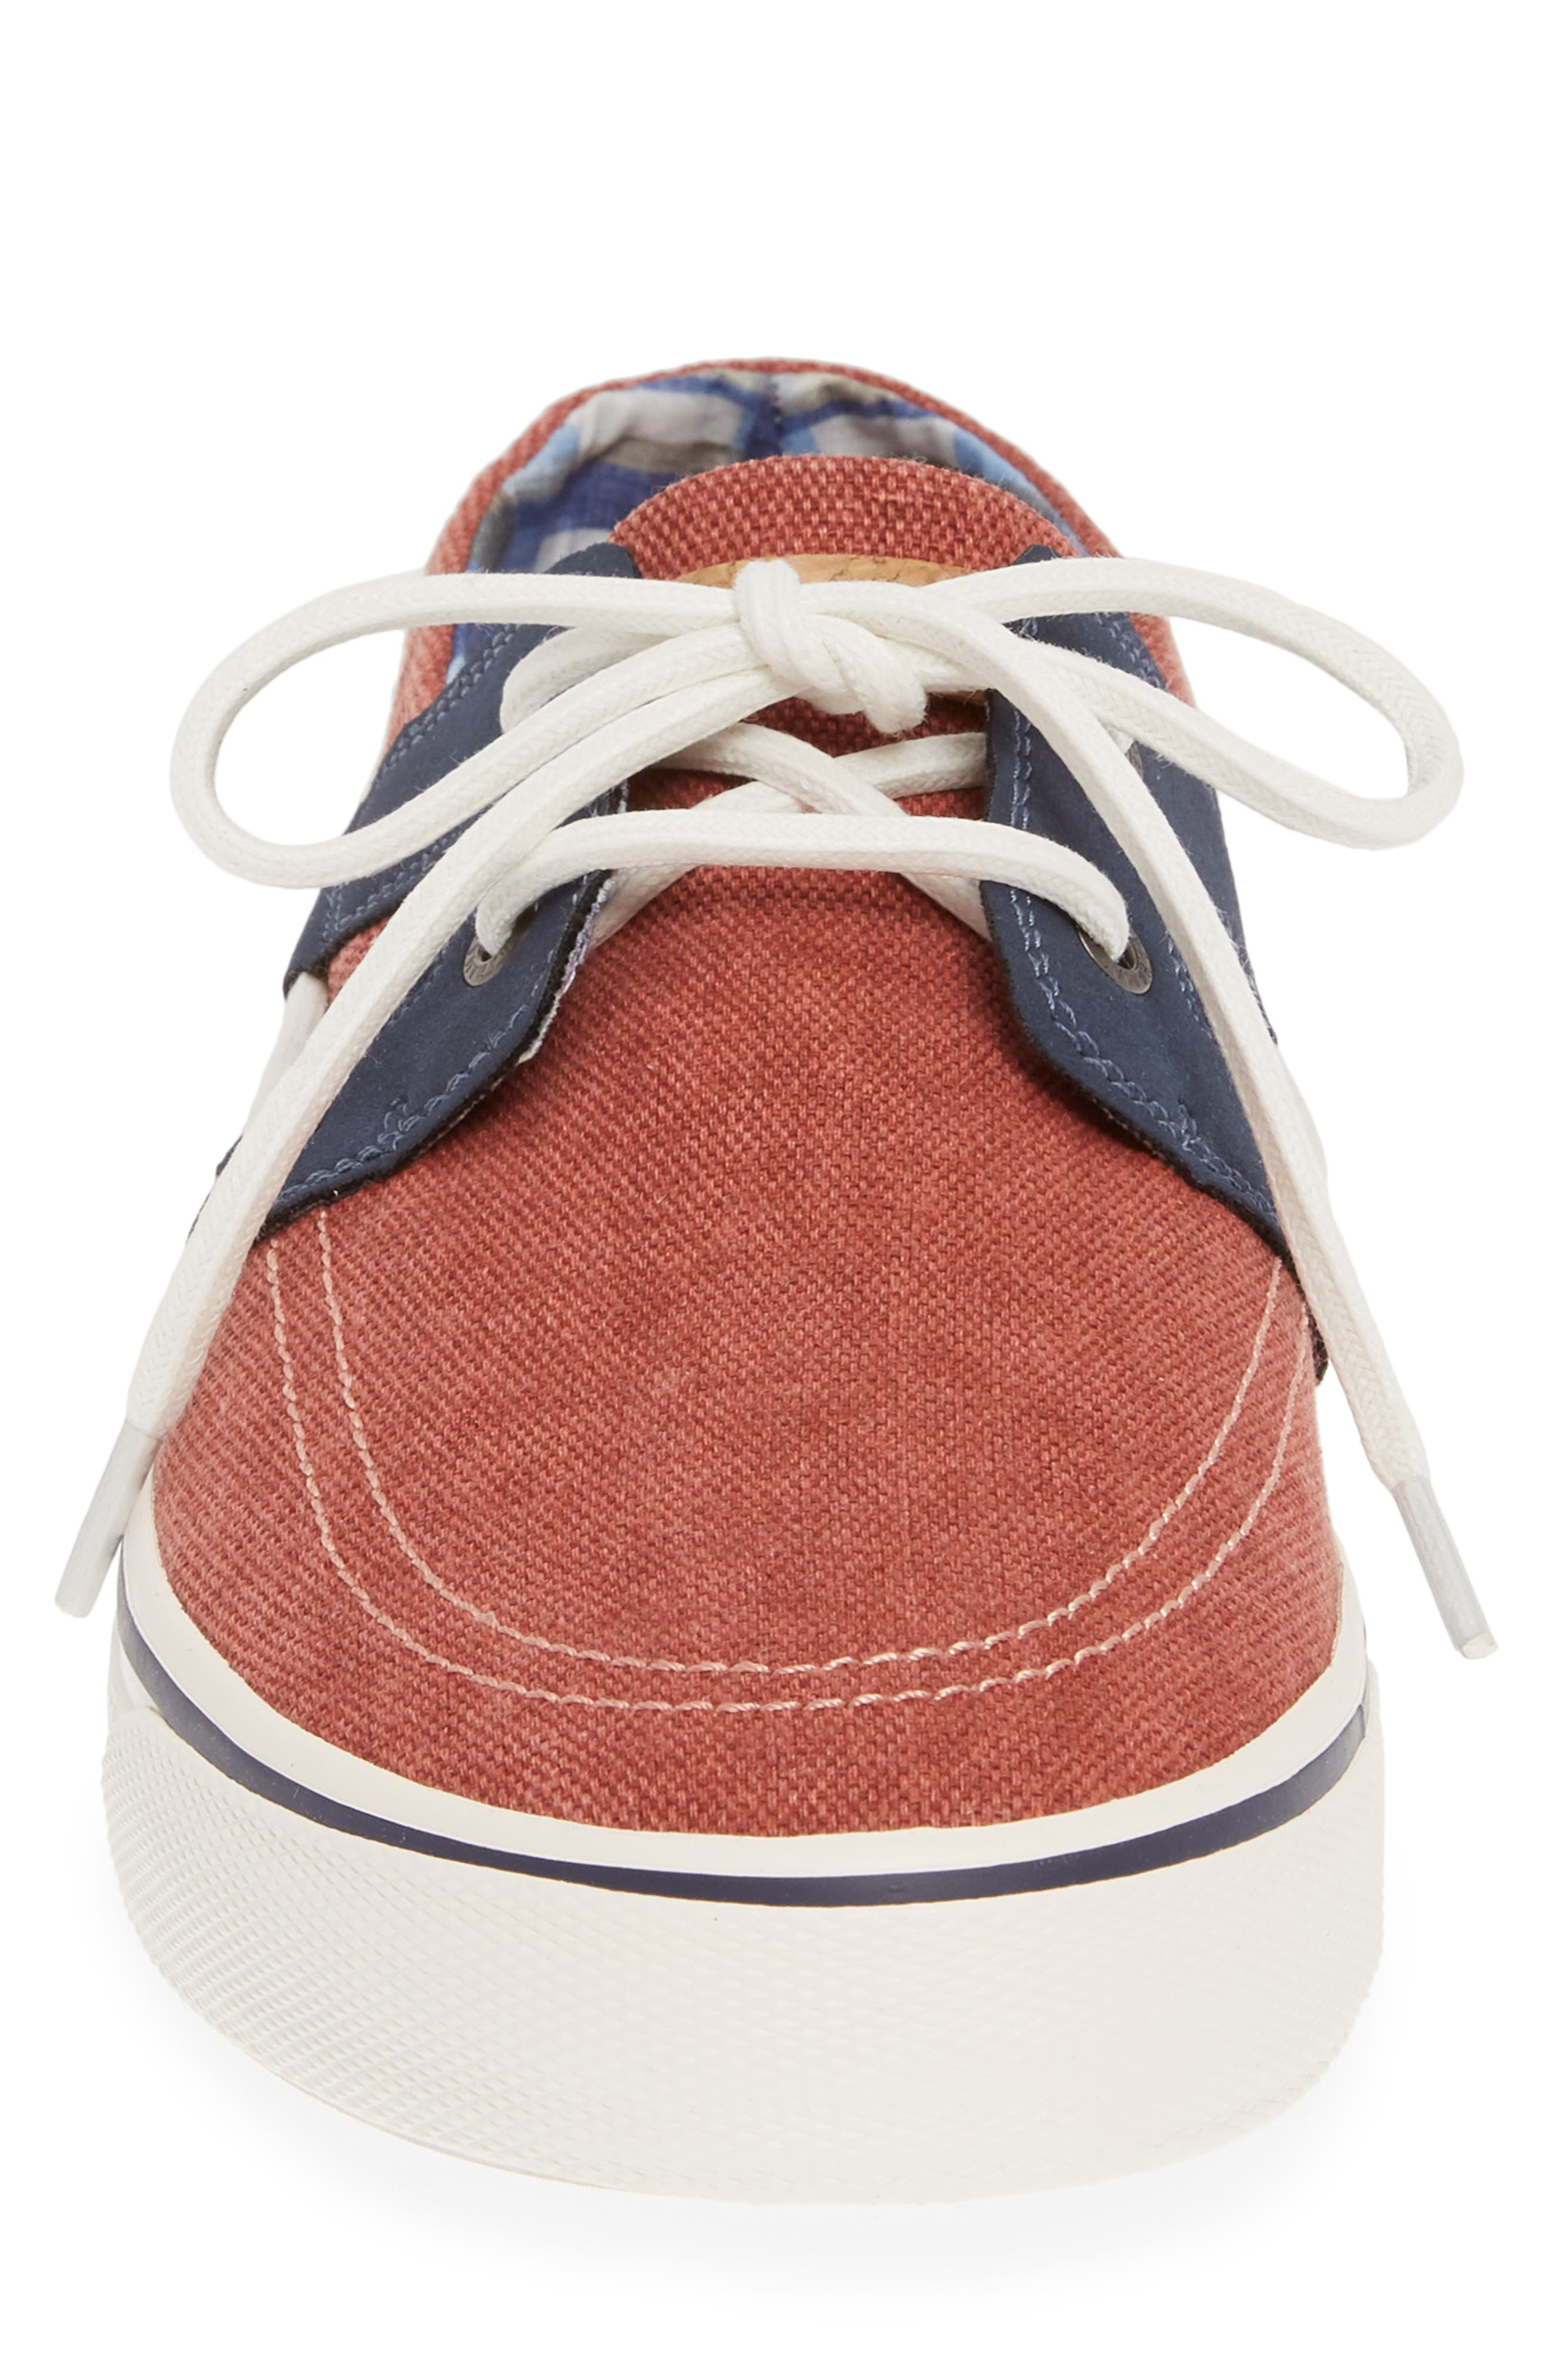 TOMMY BAHAMA, Stripe Breaker Sneaker, Alternate thumbnail 4, color, RED WASHED CANVAS/ LEATHER